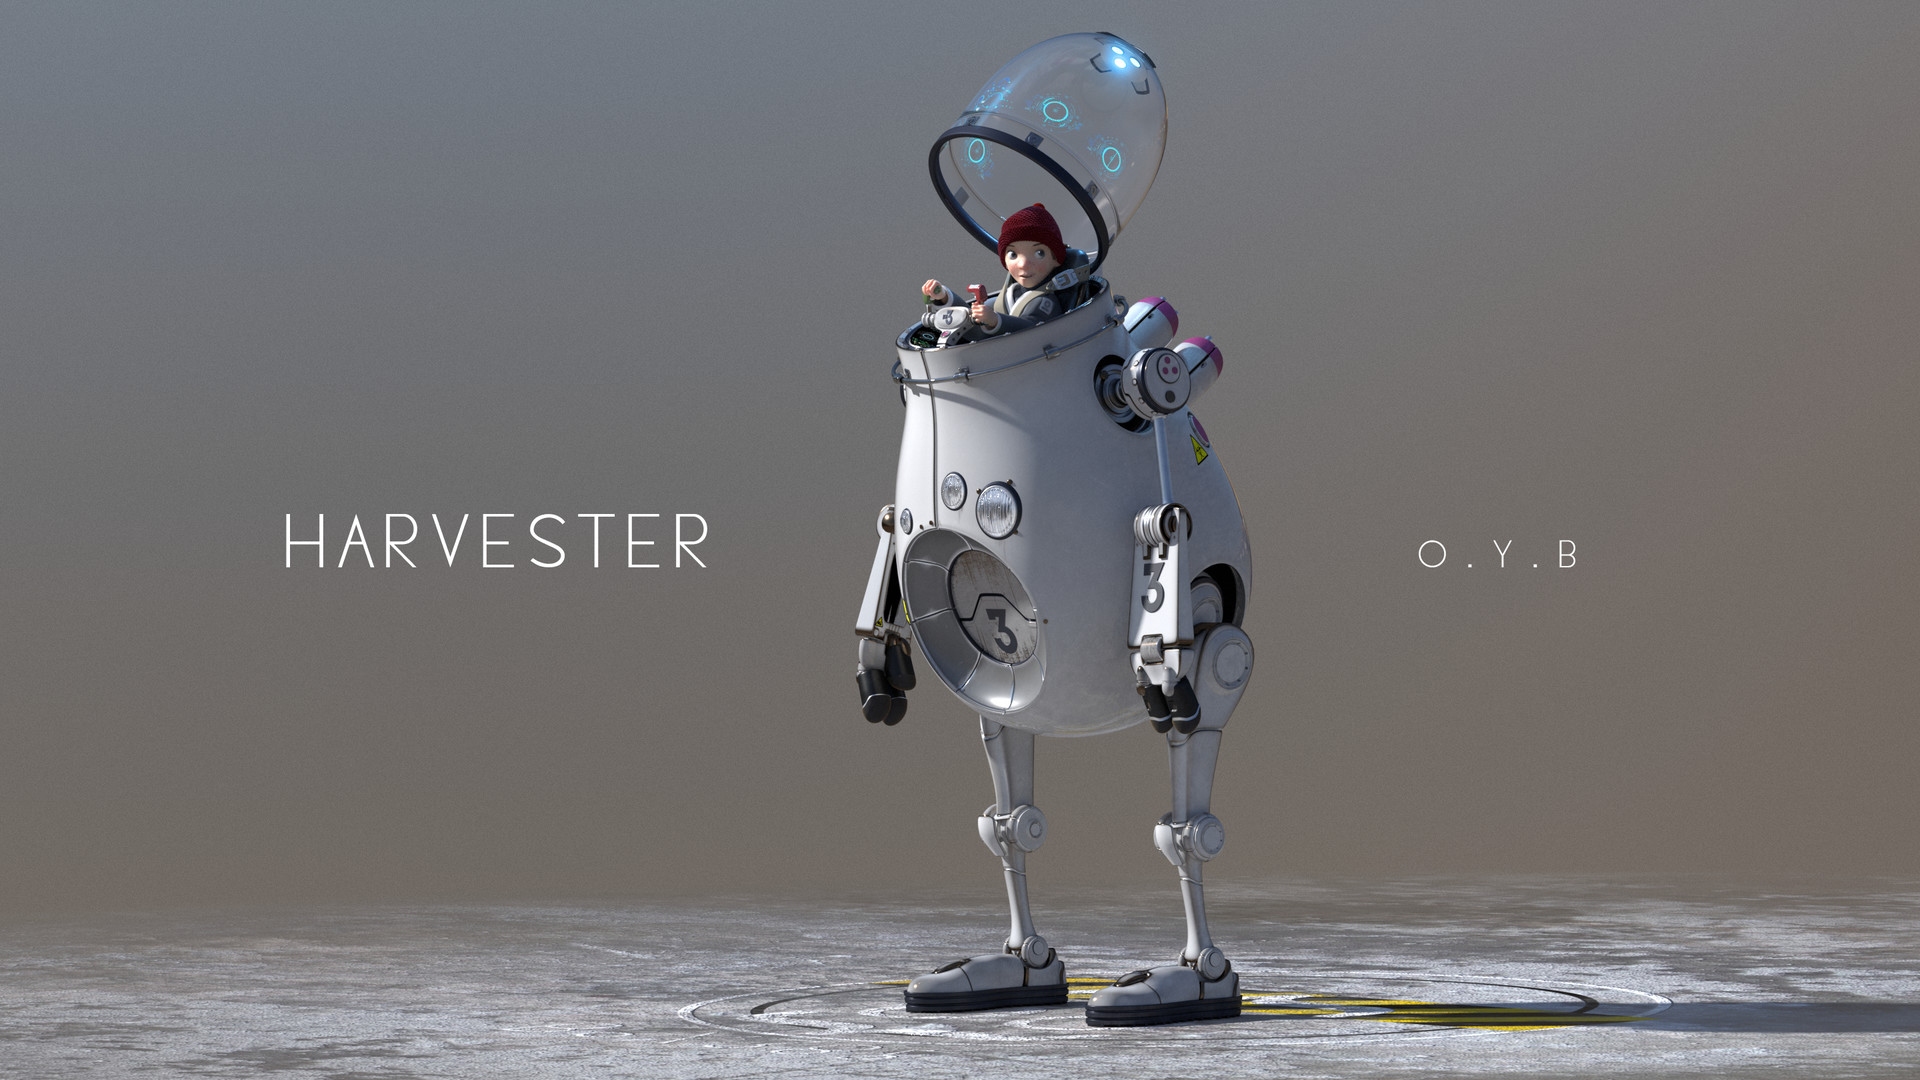 Harvester - O.Y.B project